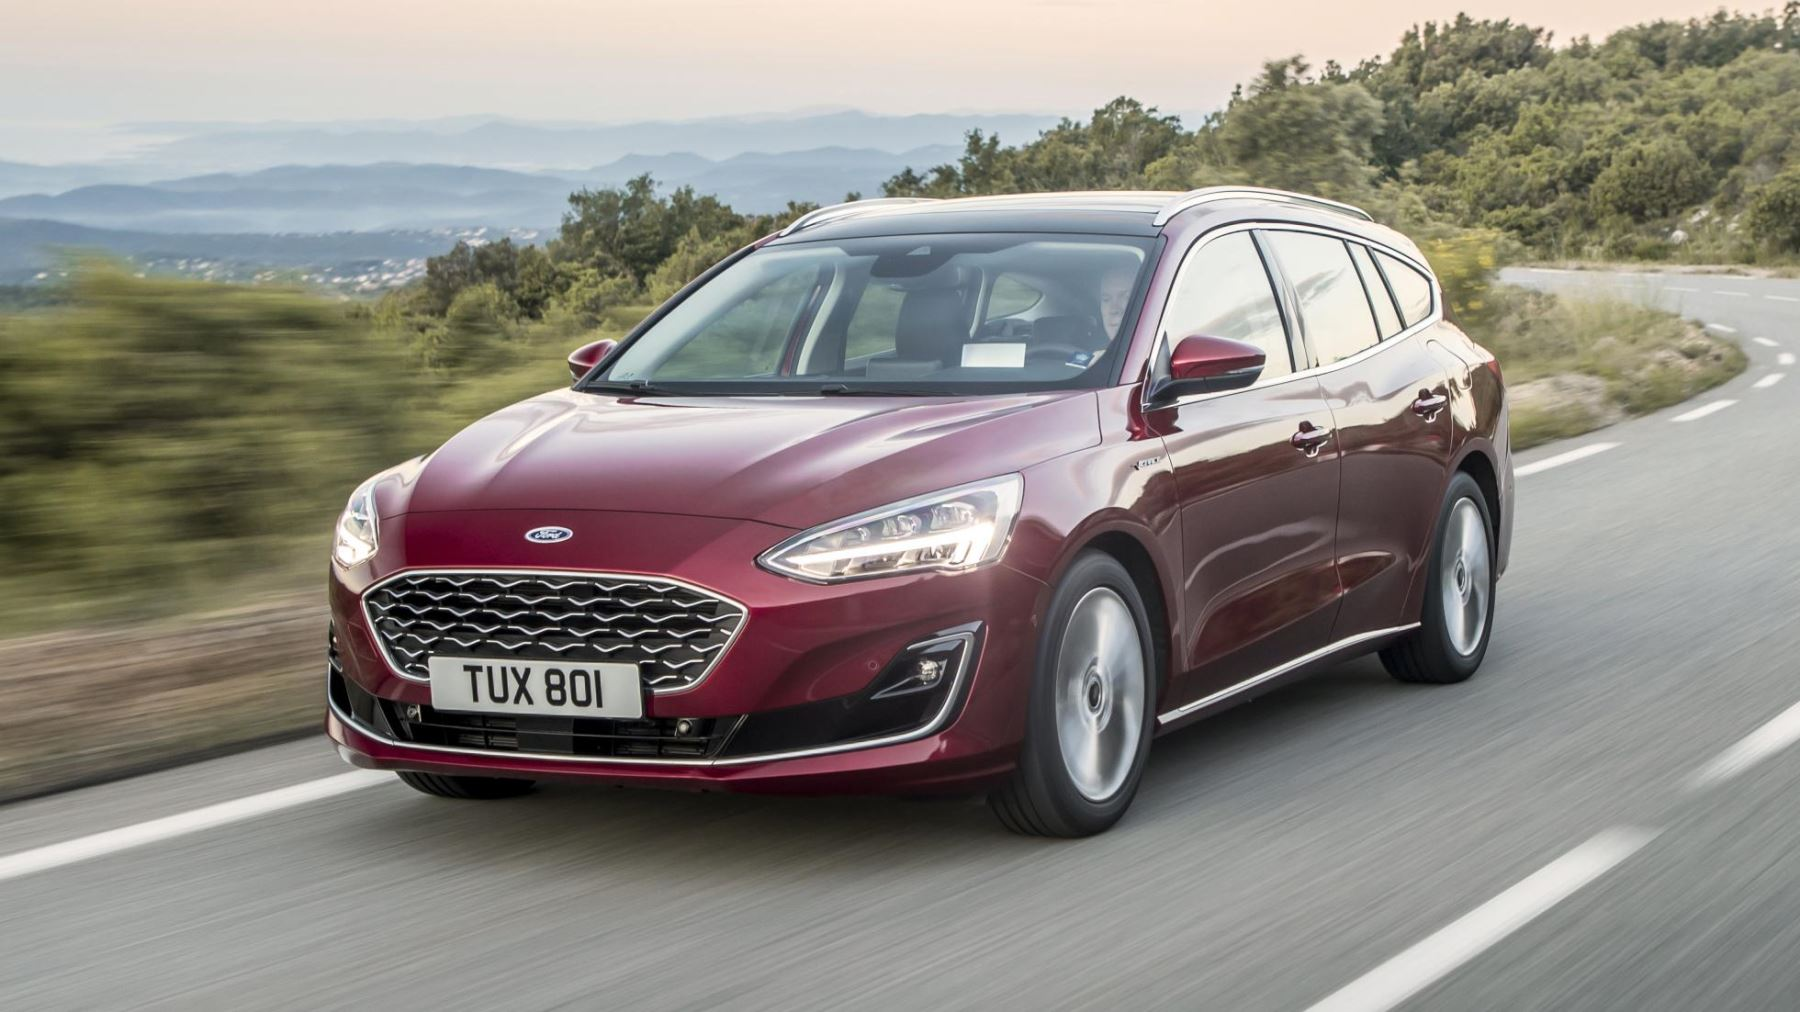 Ford Focus Active 1.0 Petrol 125ps Automatic 5 door Estate (2019)